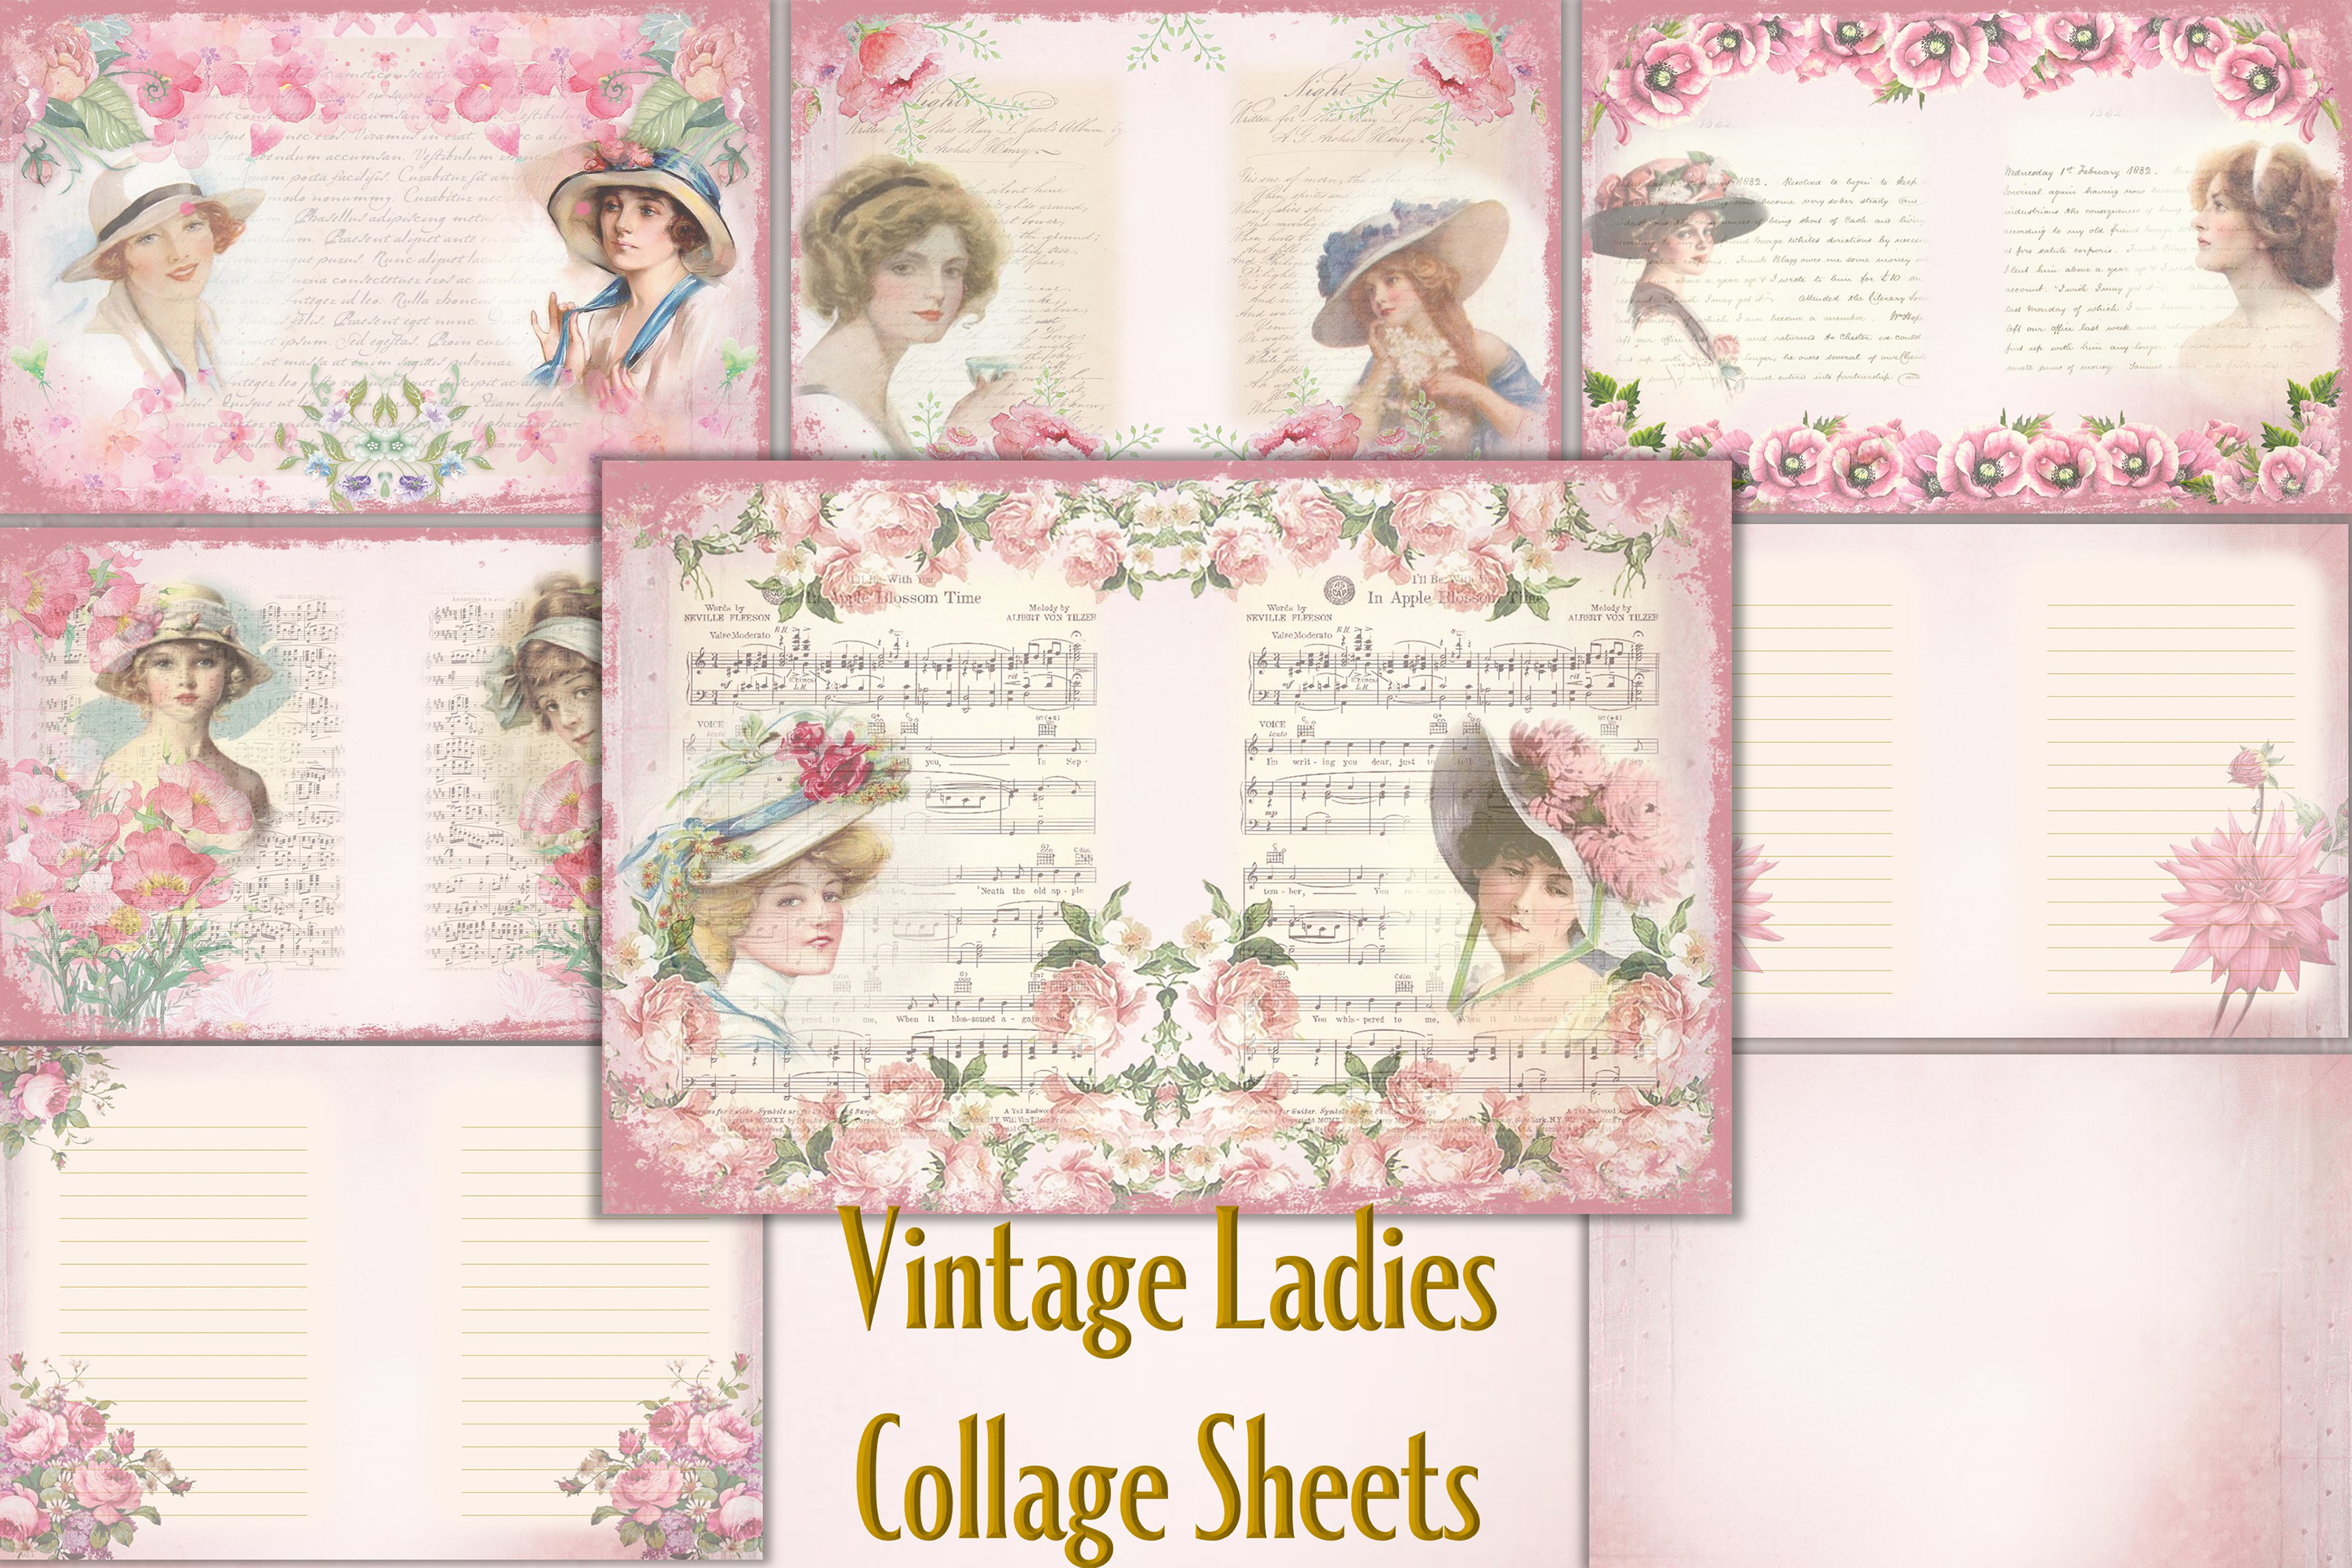 Vintage Ladies Backgrounds, Collage or Journal Sheets, A4 example image 1